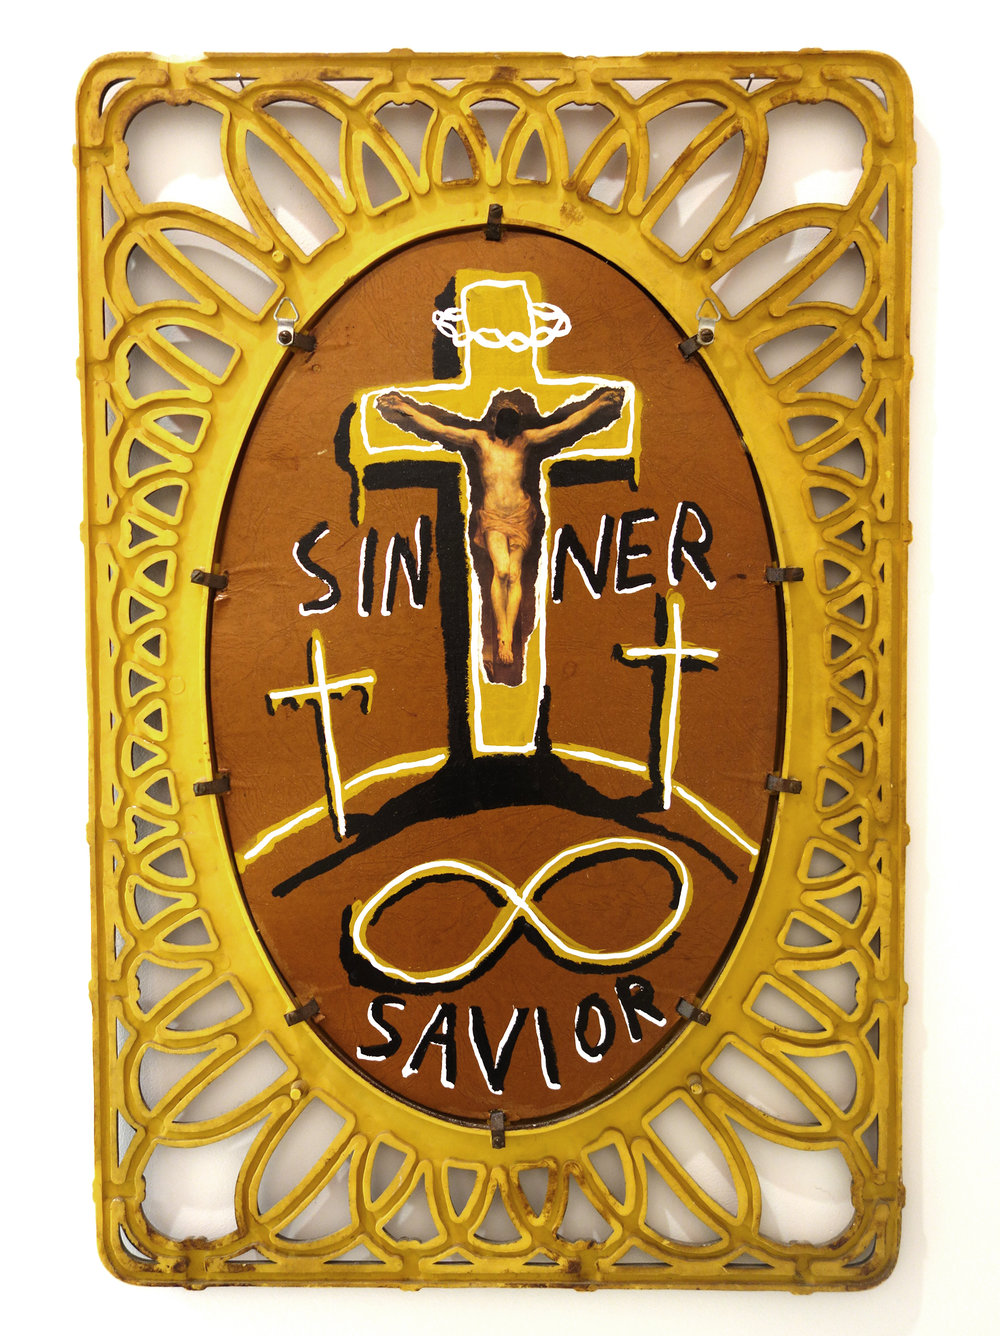 Sinner Savior (full).jpg